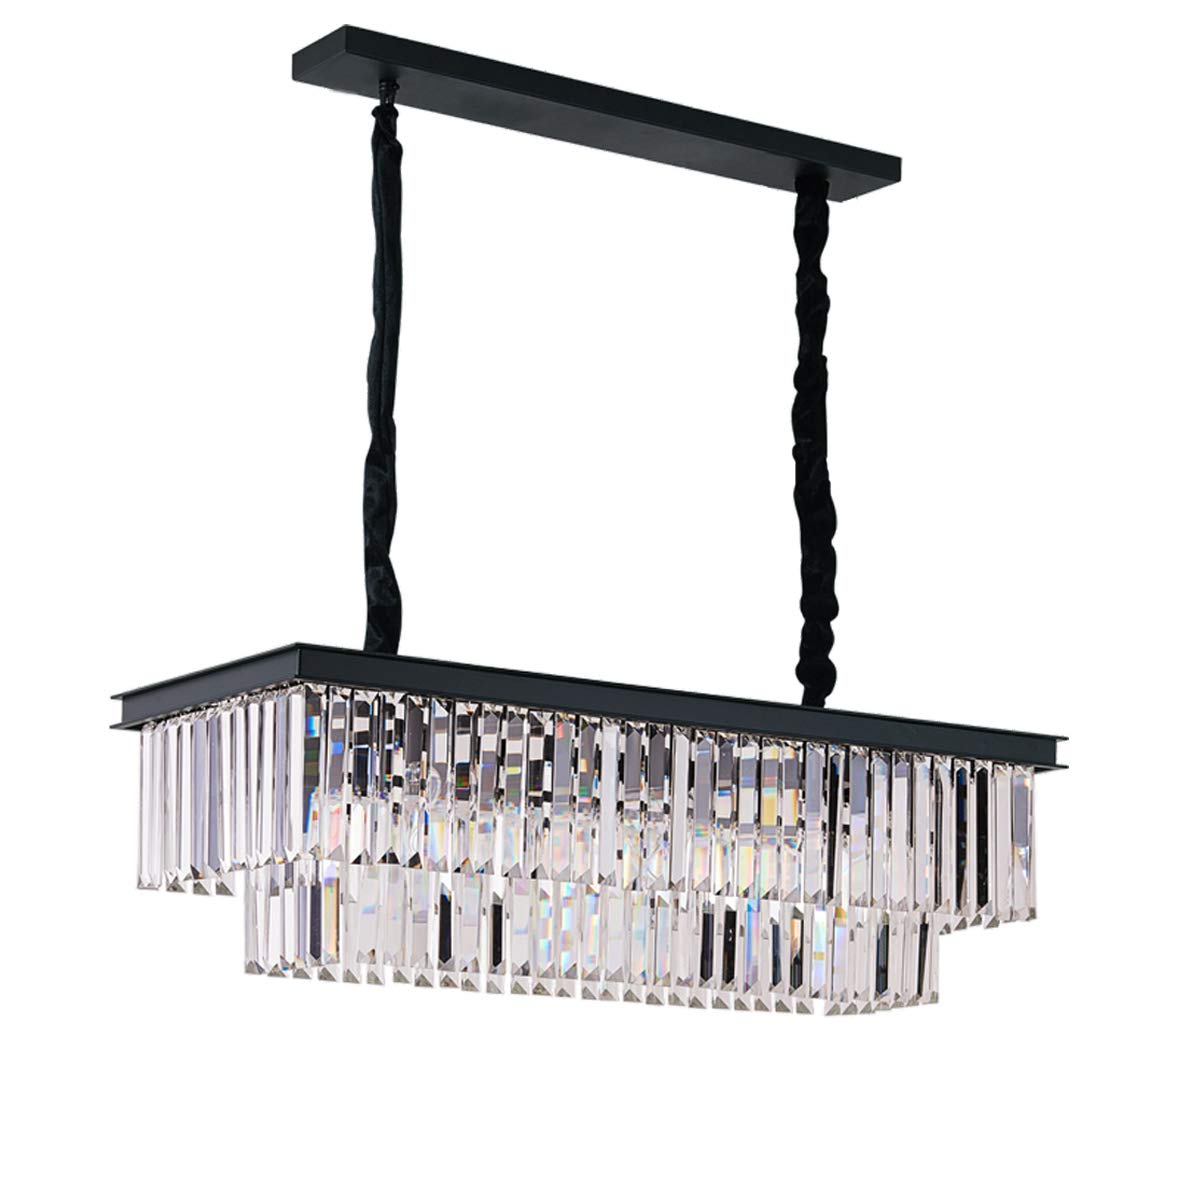 "Rectangular Crystal Chandelier Lighting Modern Linear Pendant Chandeliers Lights for Kitchen Island Dinning Table Dining Room Pool Room Rectangle Ceiling Fixture L33.5"" by Antilisha"